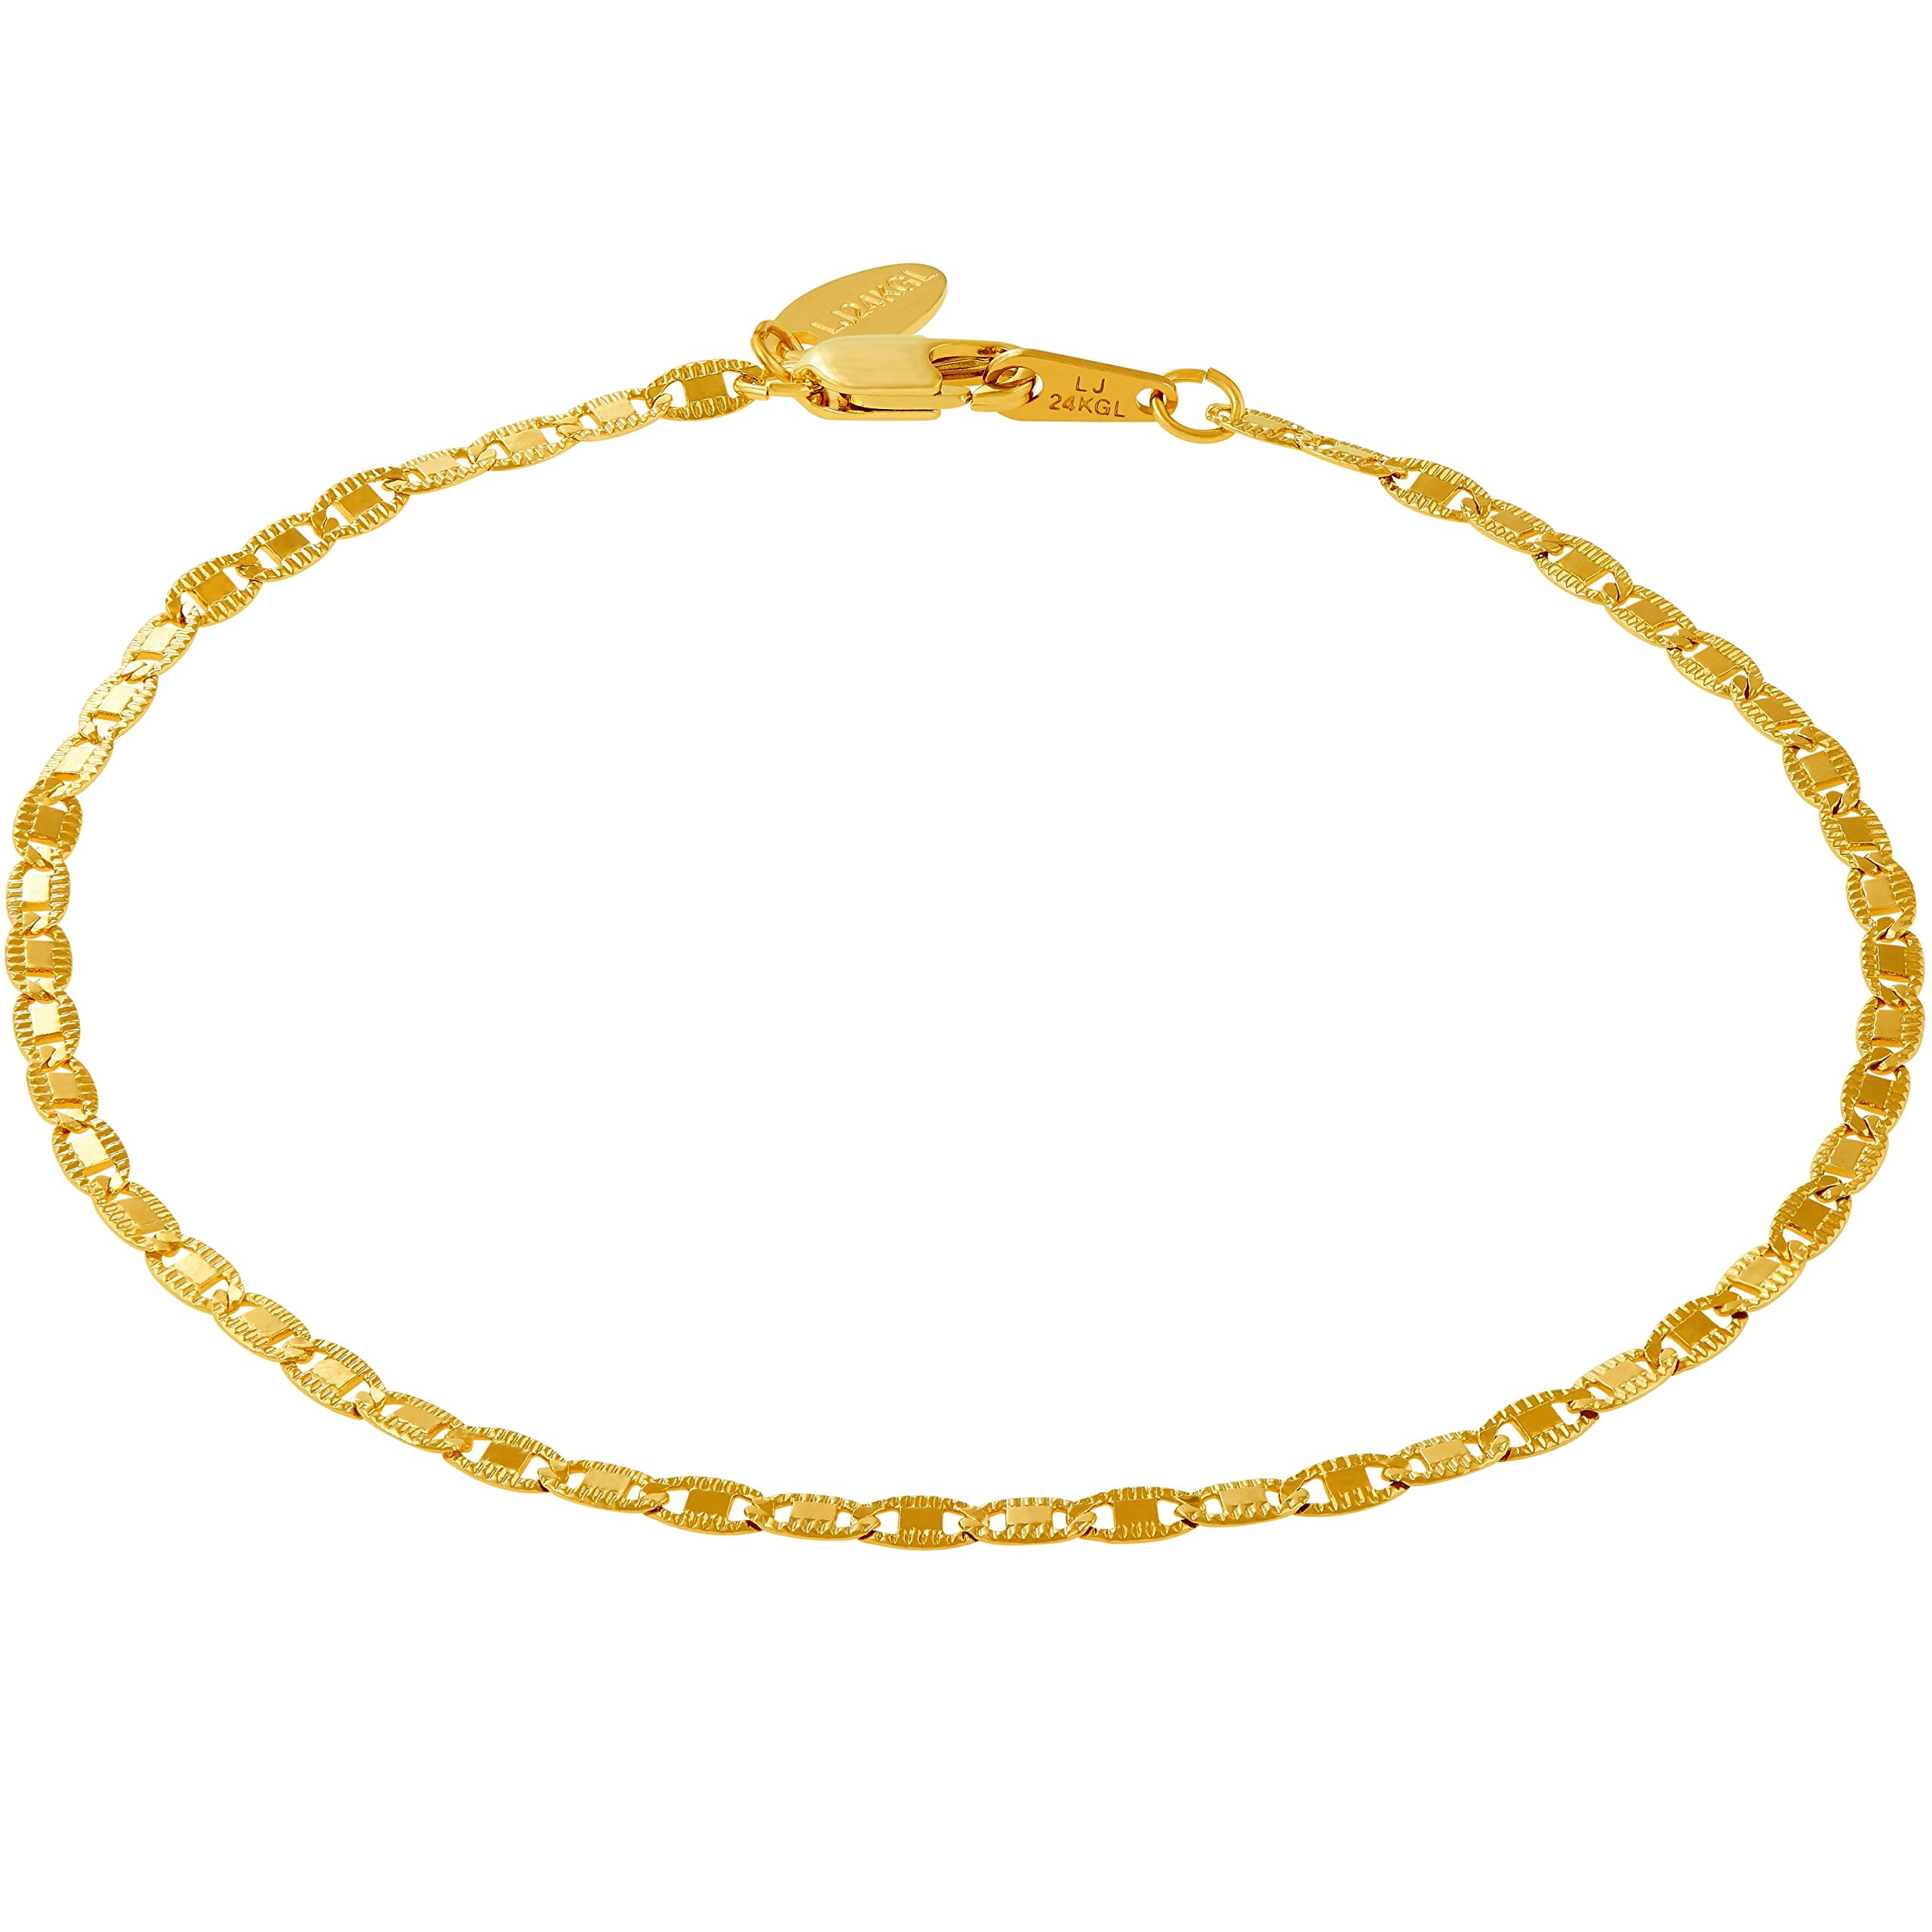 Lifetime Jewelry Gold Ankle Bracelets for Women Men and Teen Girls [ 2.5mm Flat Mariner Link Chain ] 20X More Real 24K Plating Than Other Anklets - Cute for Beach Party Wedding 9 10 and 11 inches